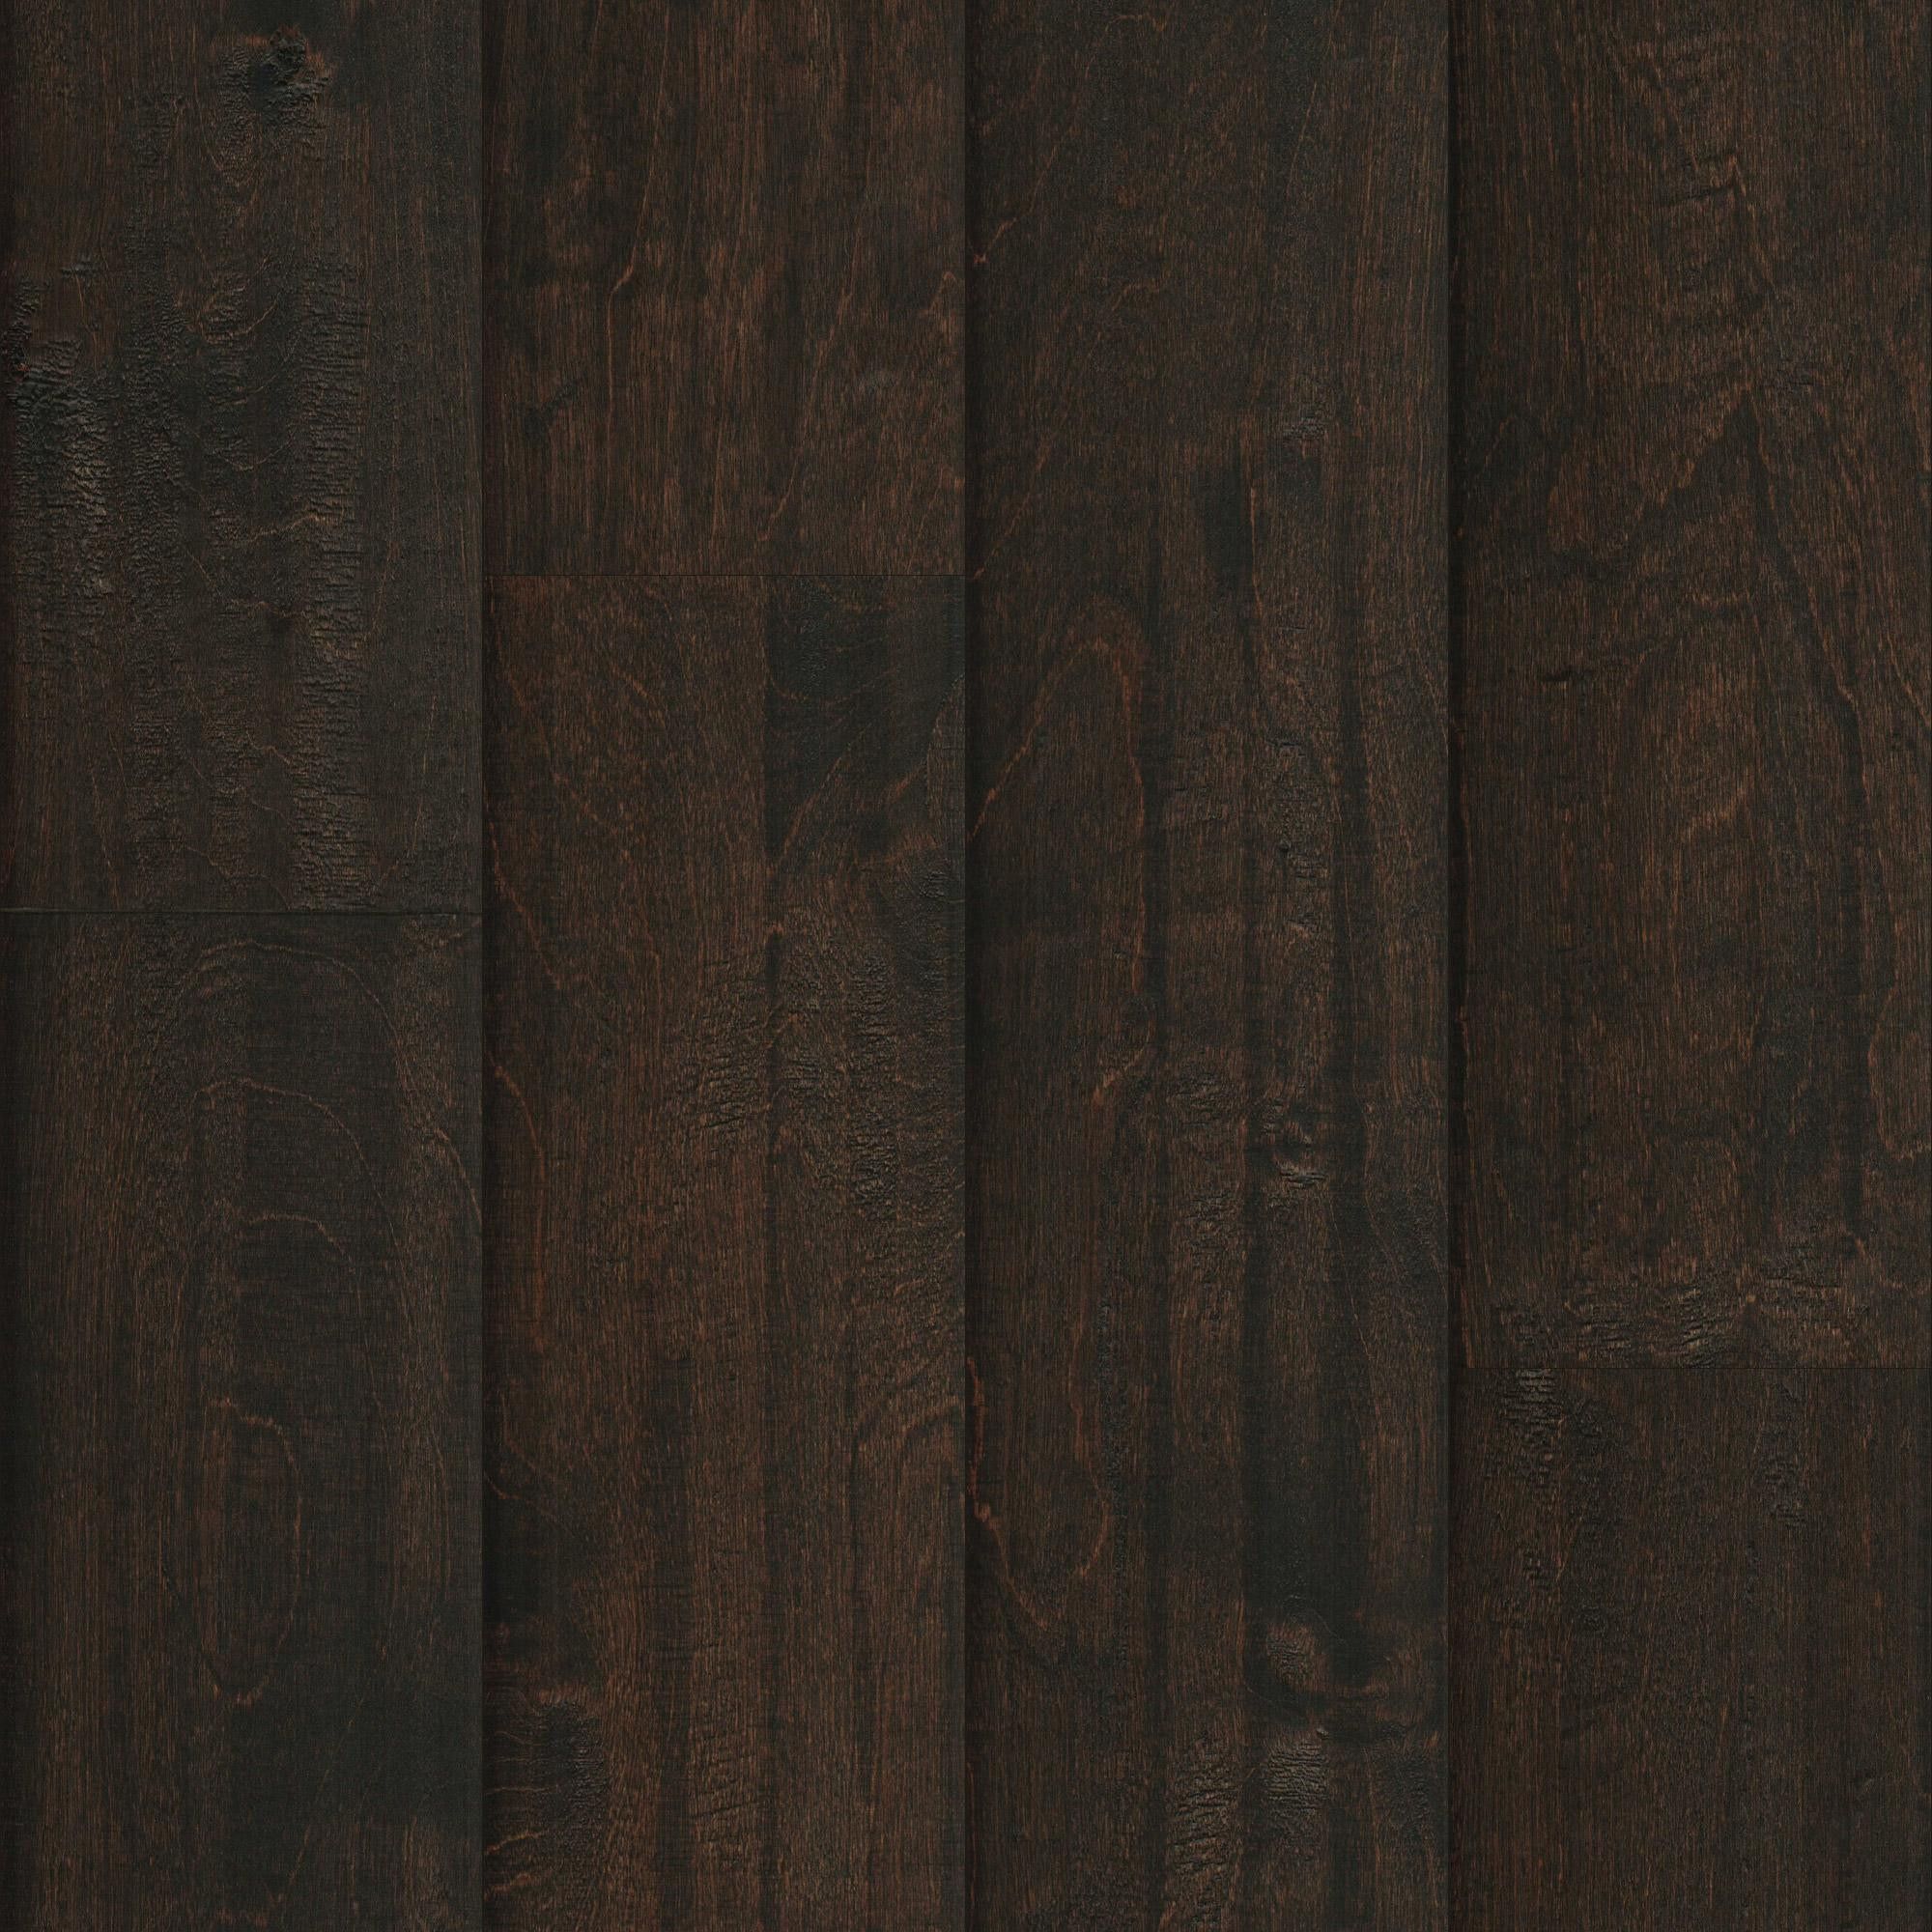 mannington engineered hardwood flooring reviews of mullican castle ridge birch espresso 5 engineered hardwood flooring pertaining to file 447 31